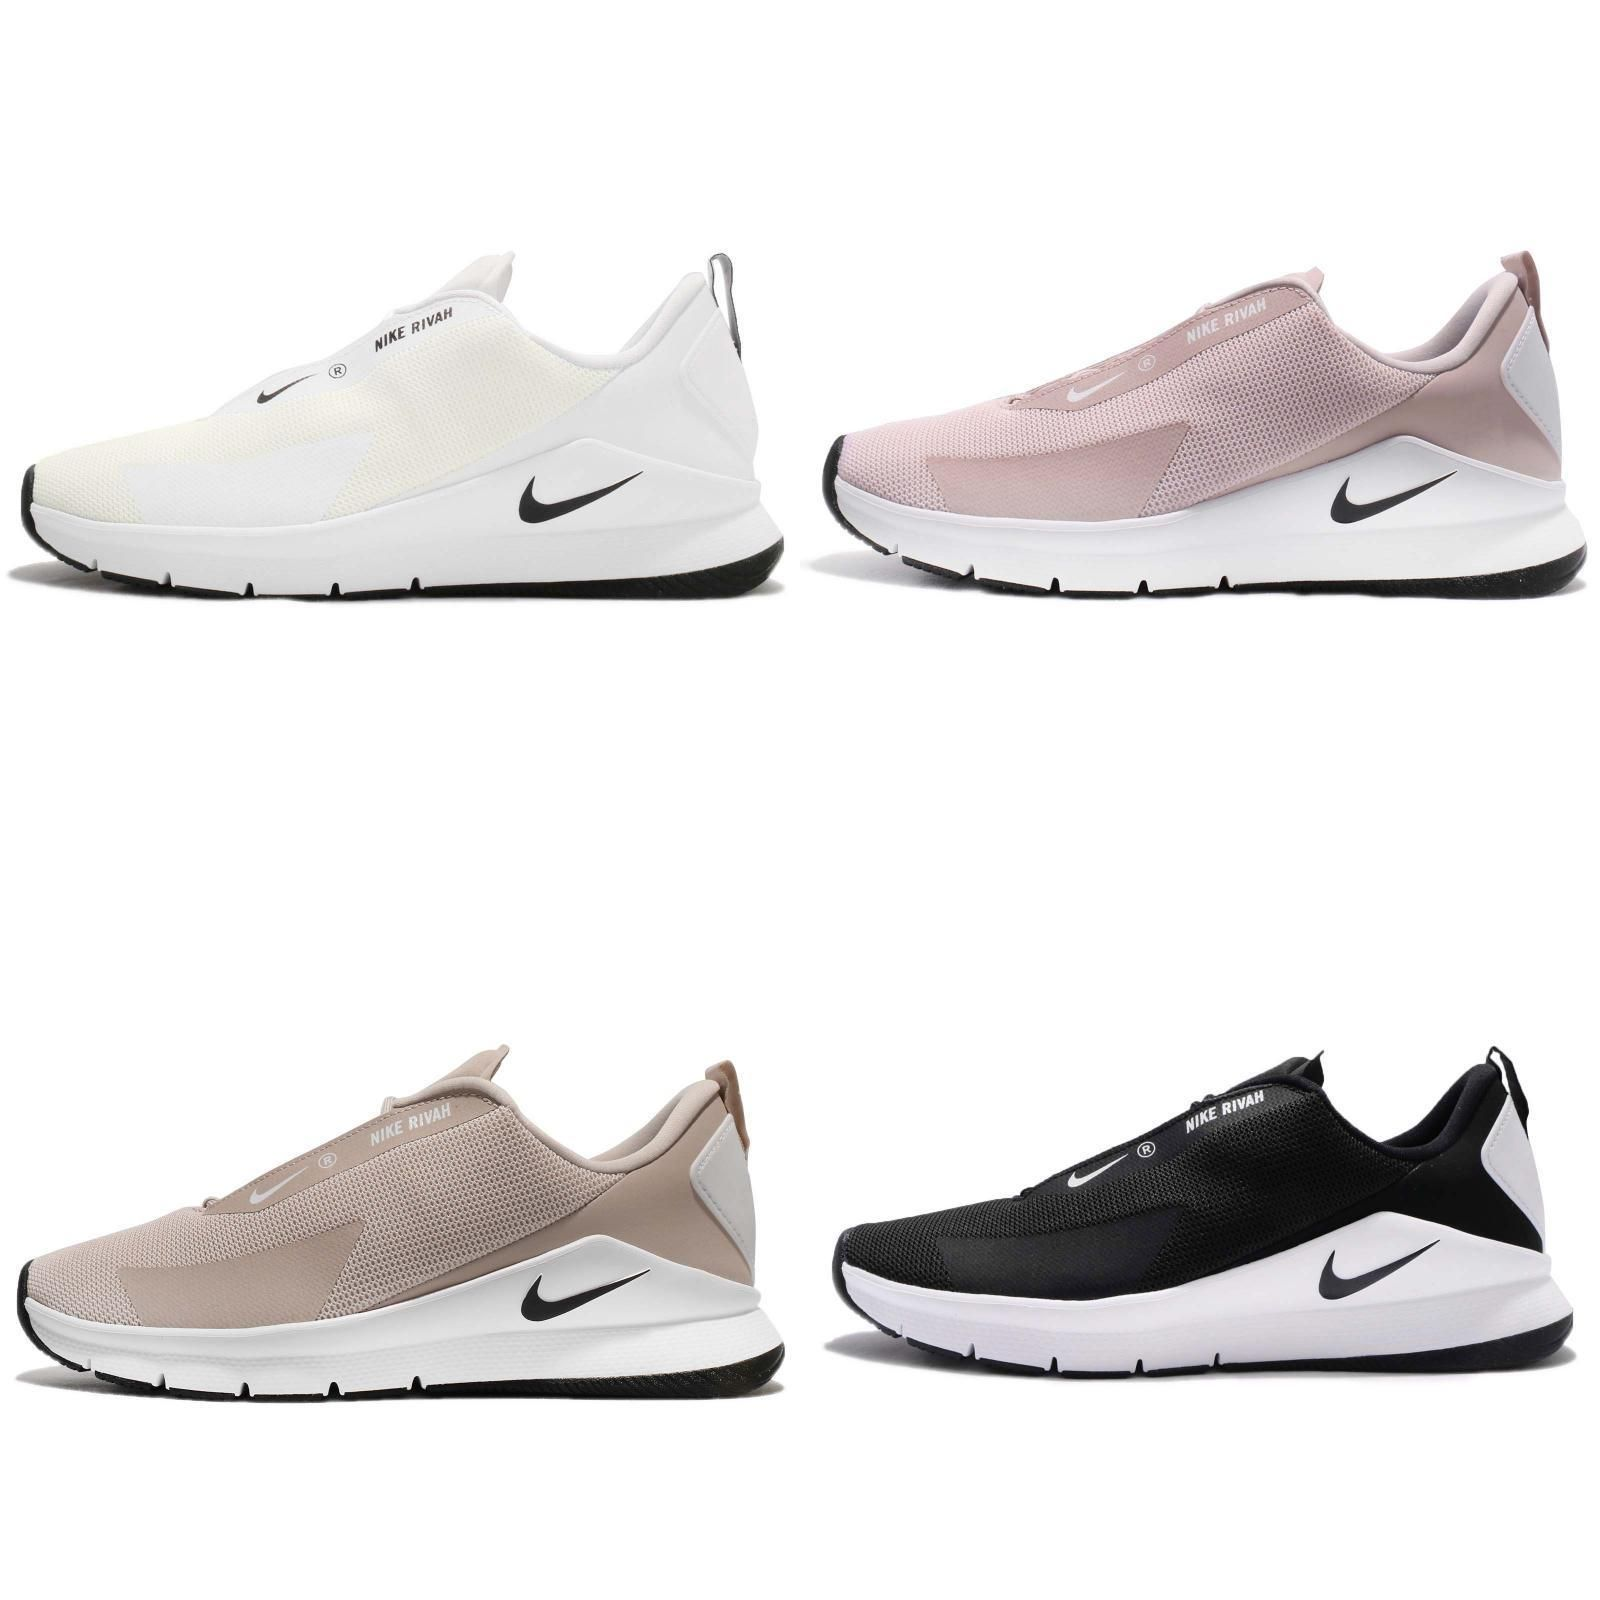 wholesale dealer 60c23 857d1 Wmns Nike Rivah Women Slip On Running Shoes Sneakers Trainers Pick 1